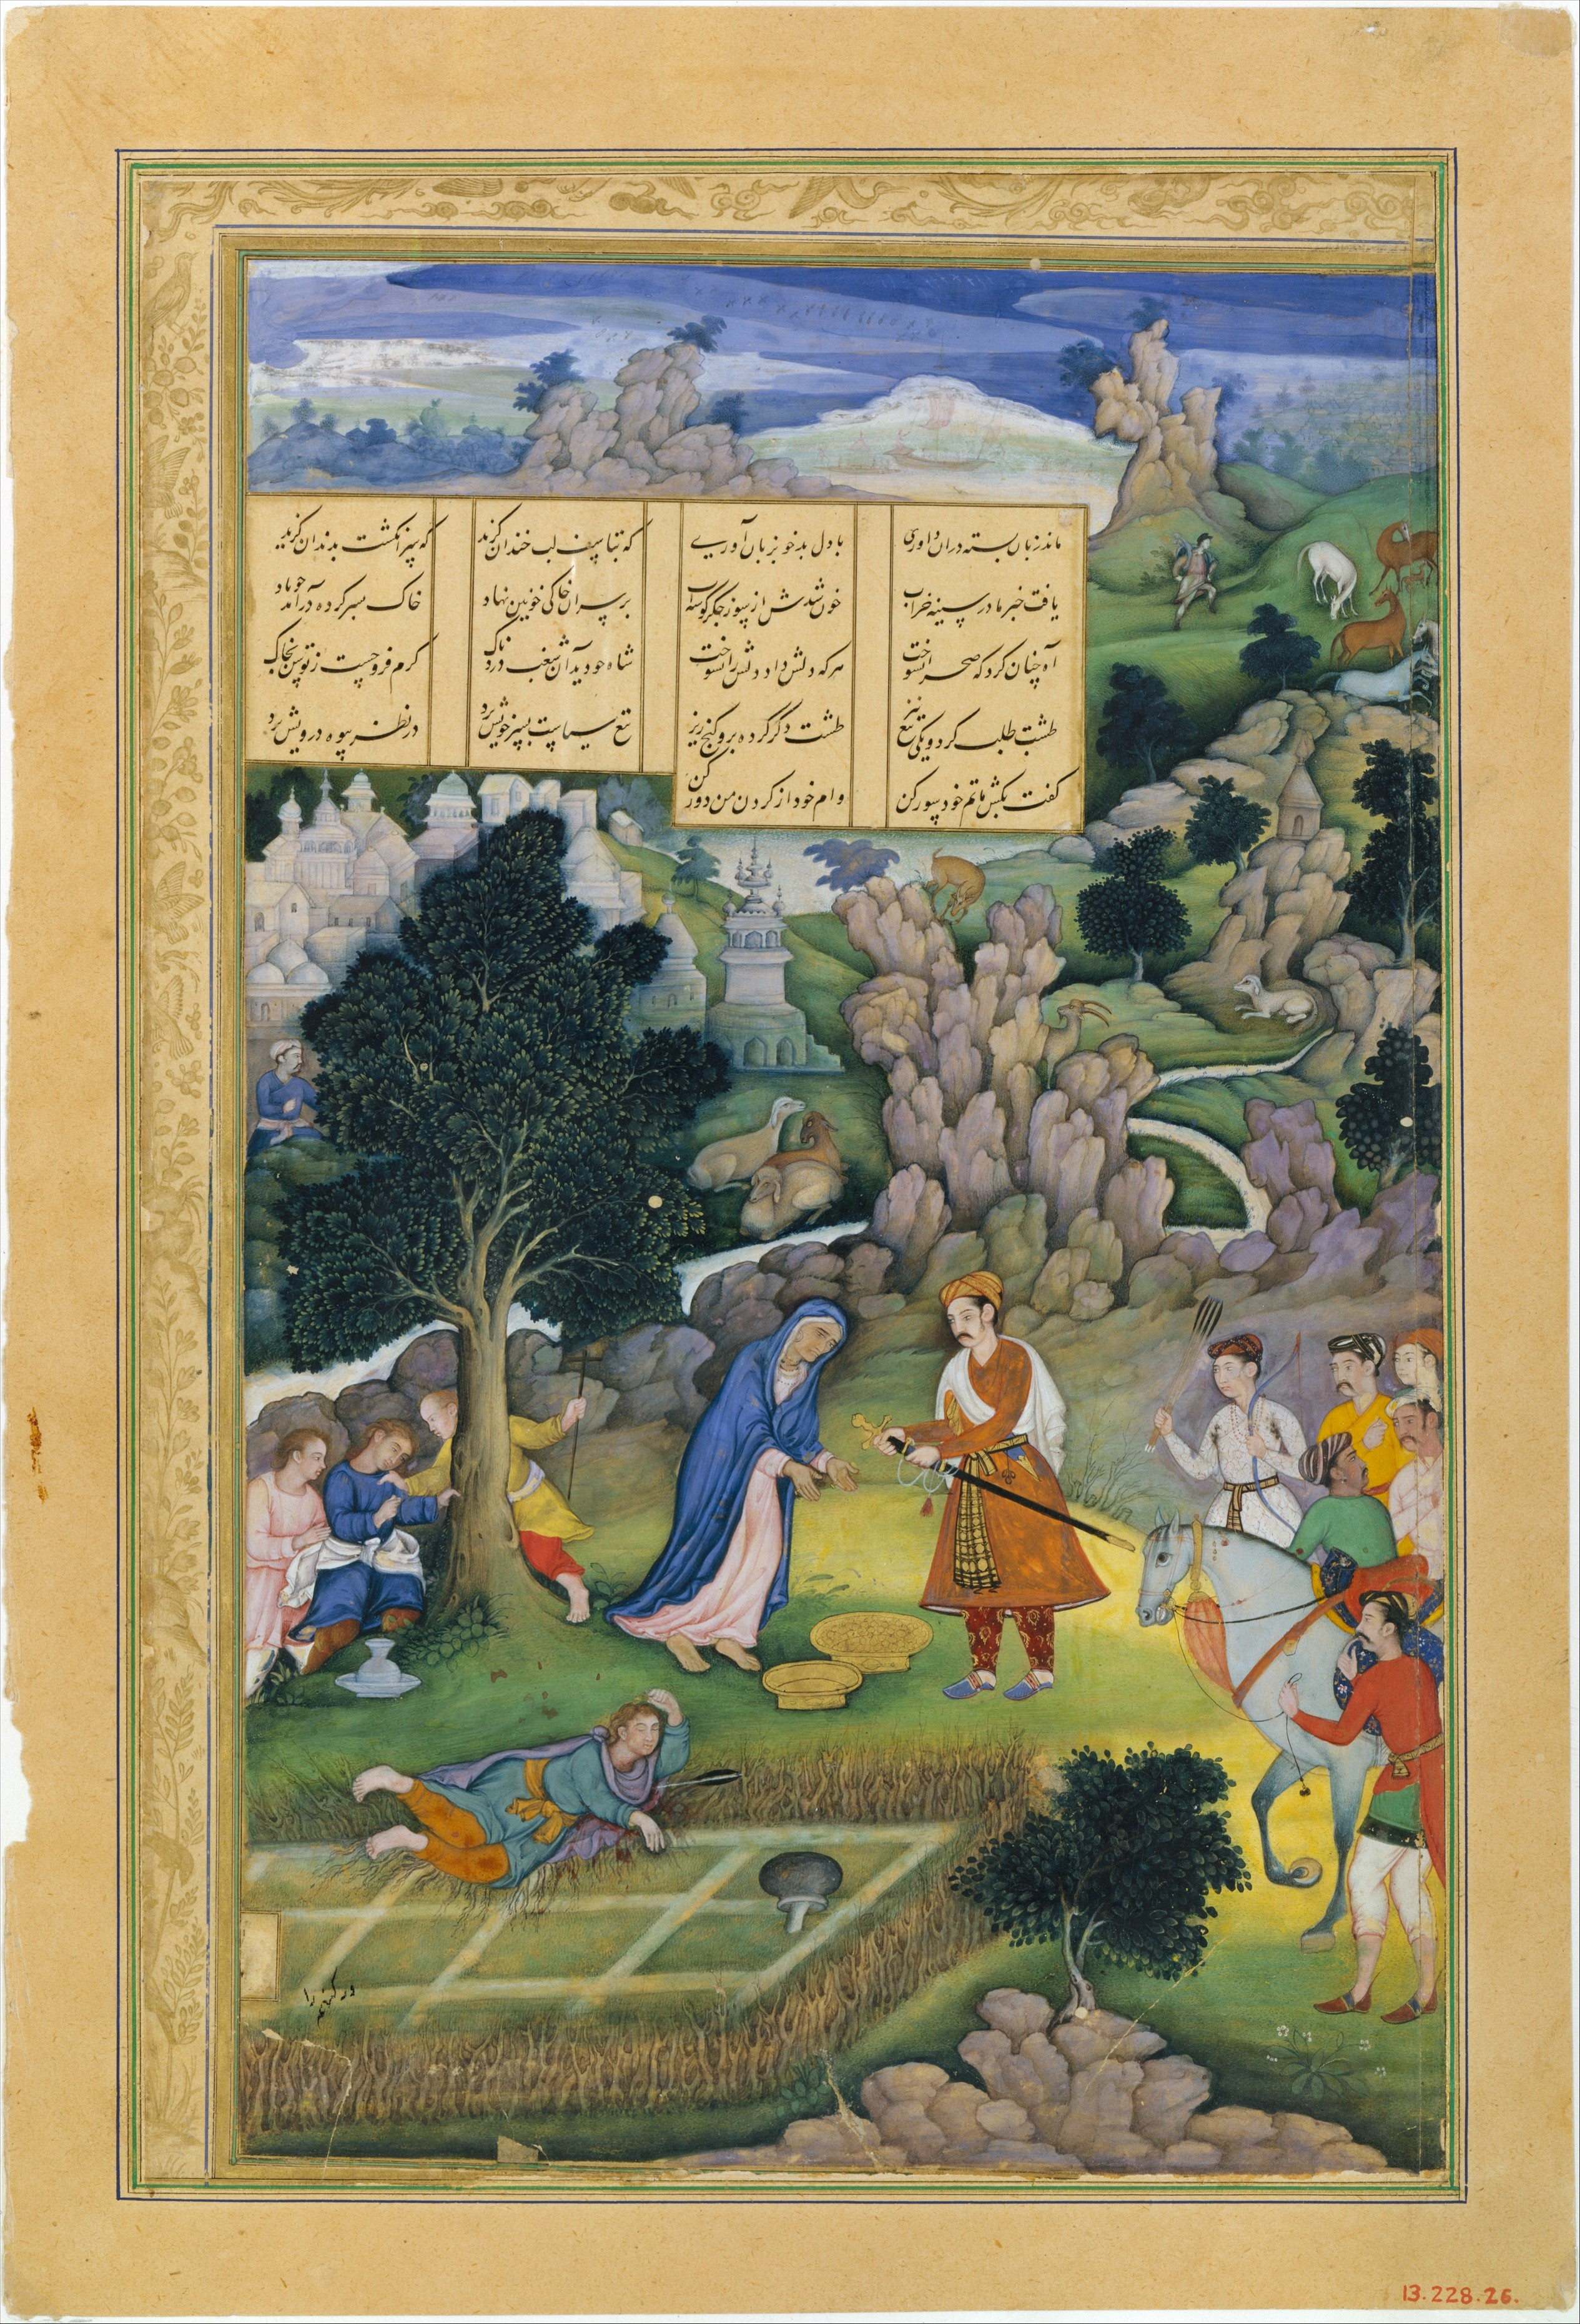 """A King Offers to Make Amends to a Bereaved Mother"", Folio from a Khamsa (Quintet) of Amir Khusrau Dihlavi"